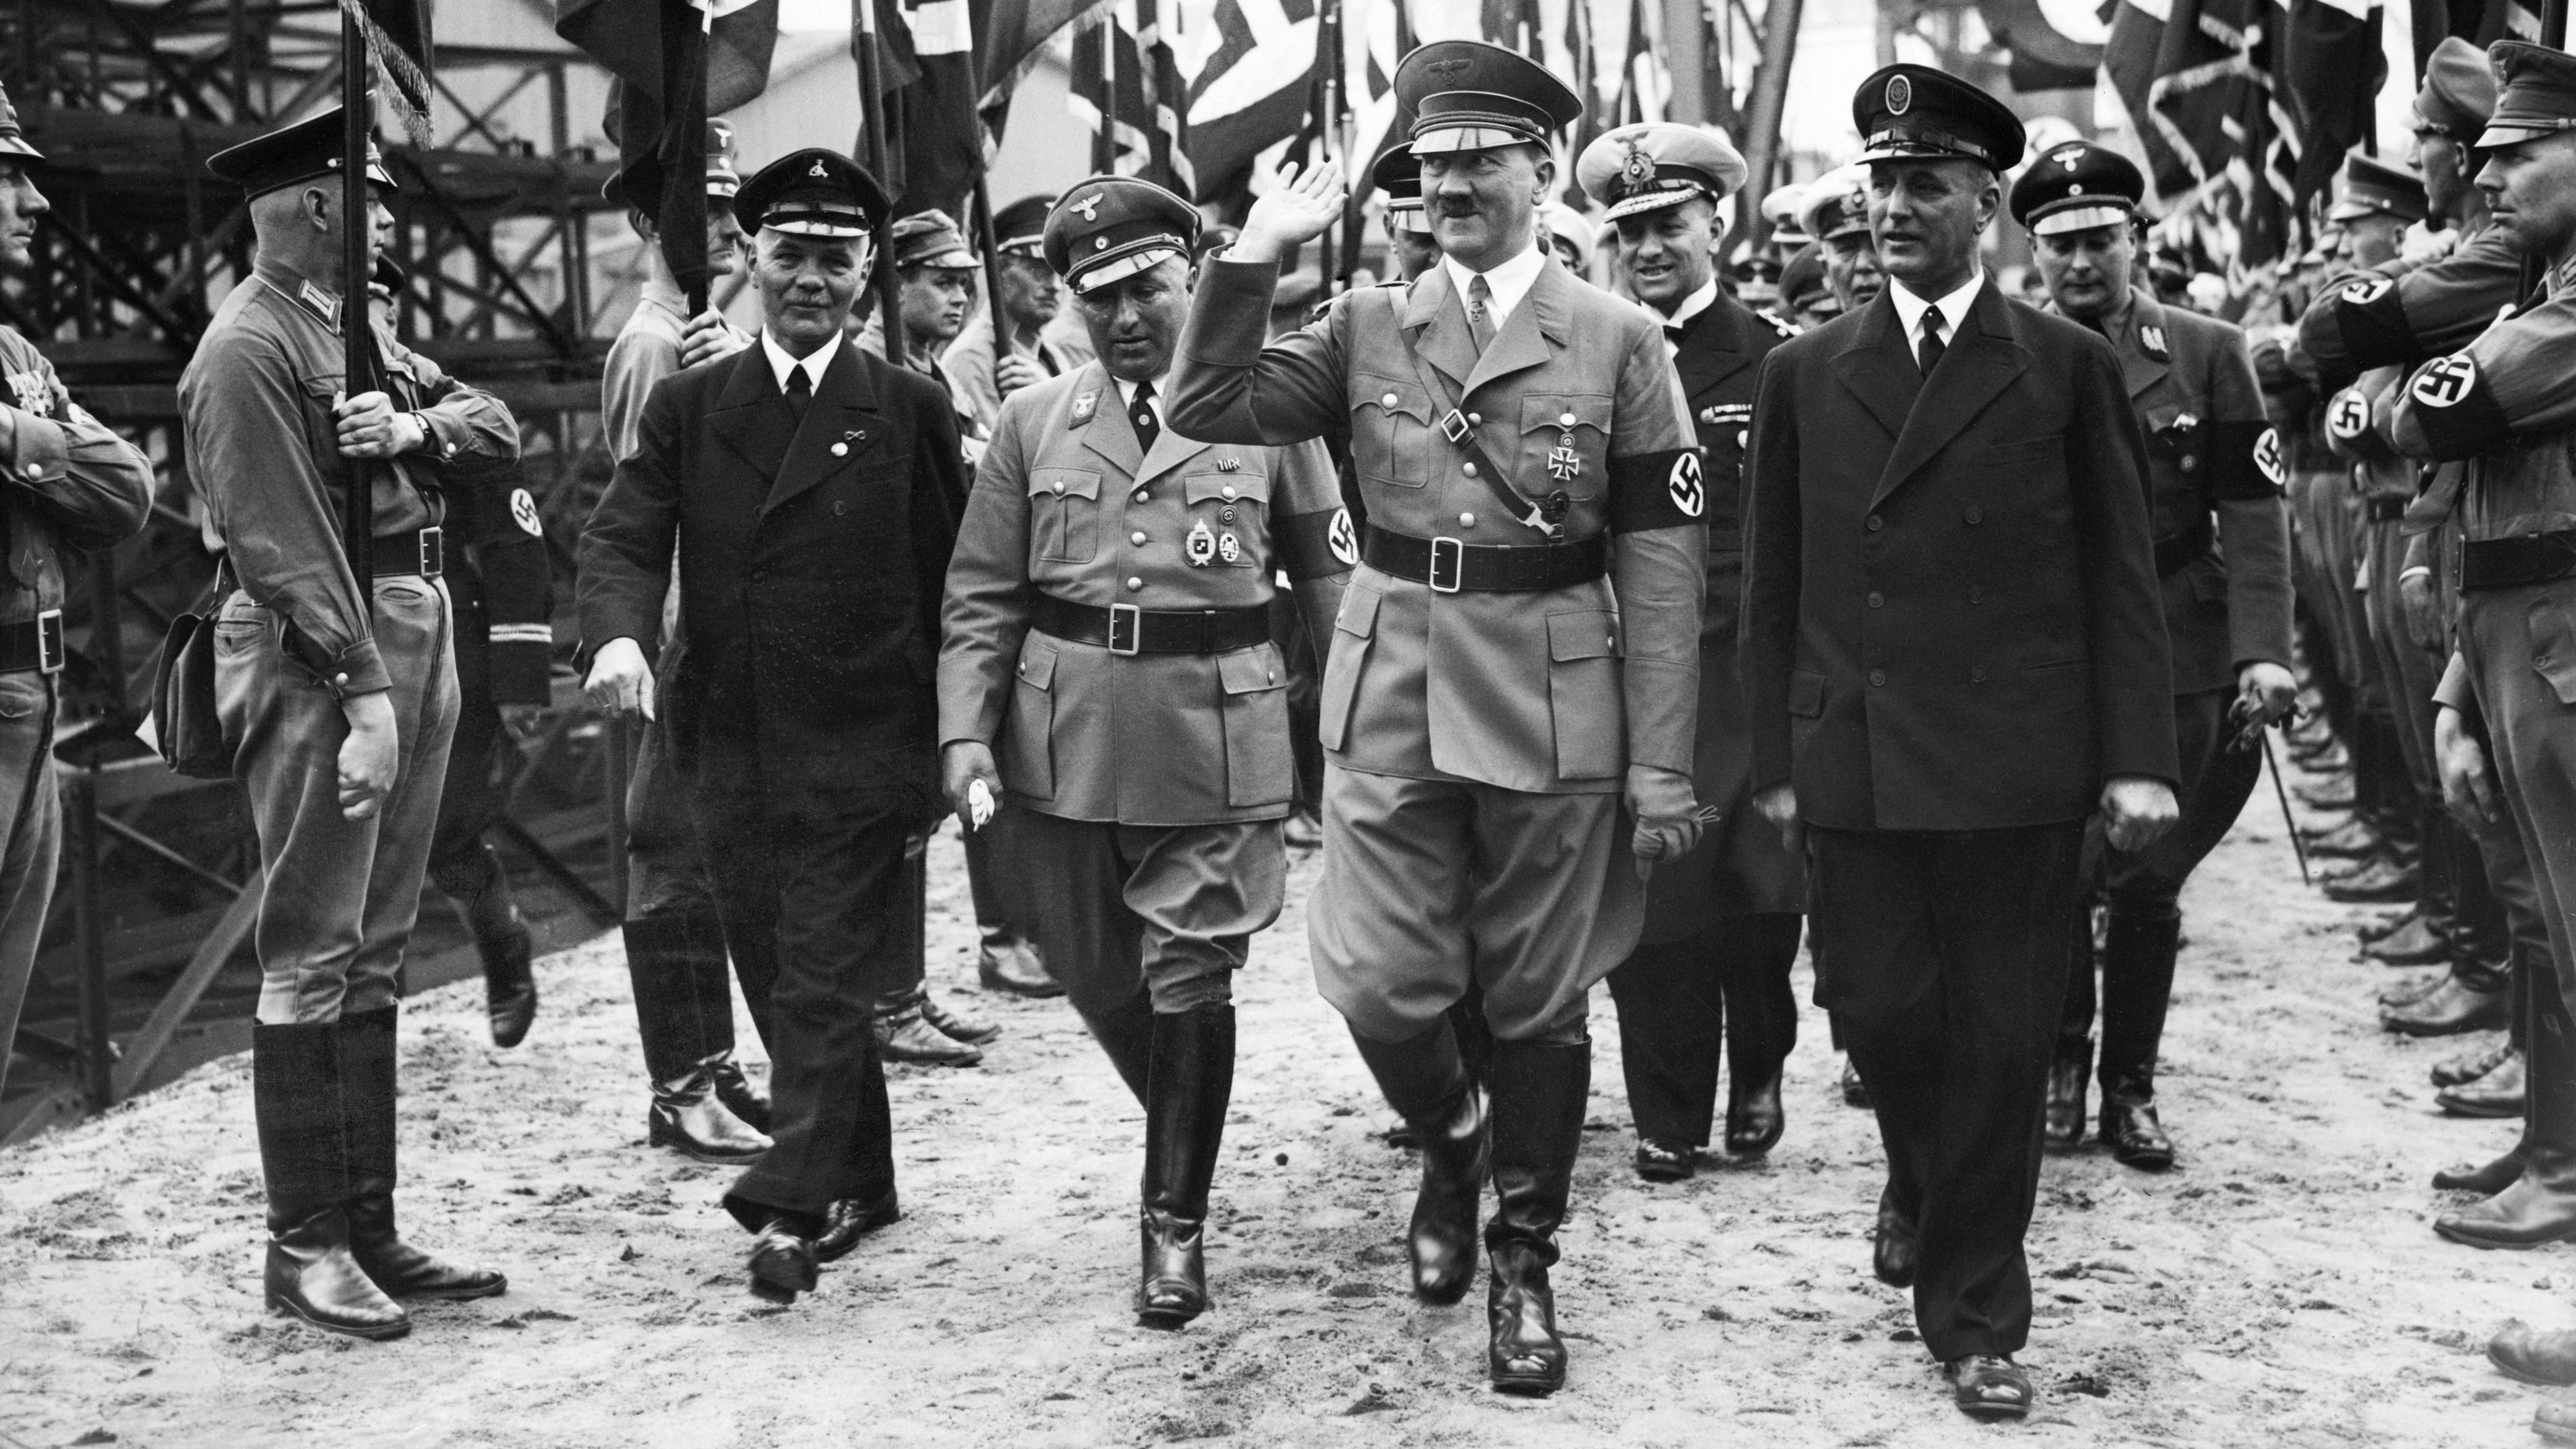 why did hitler want power